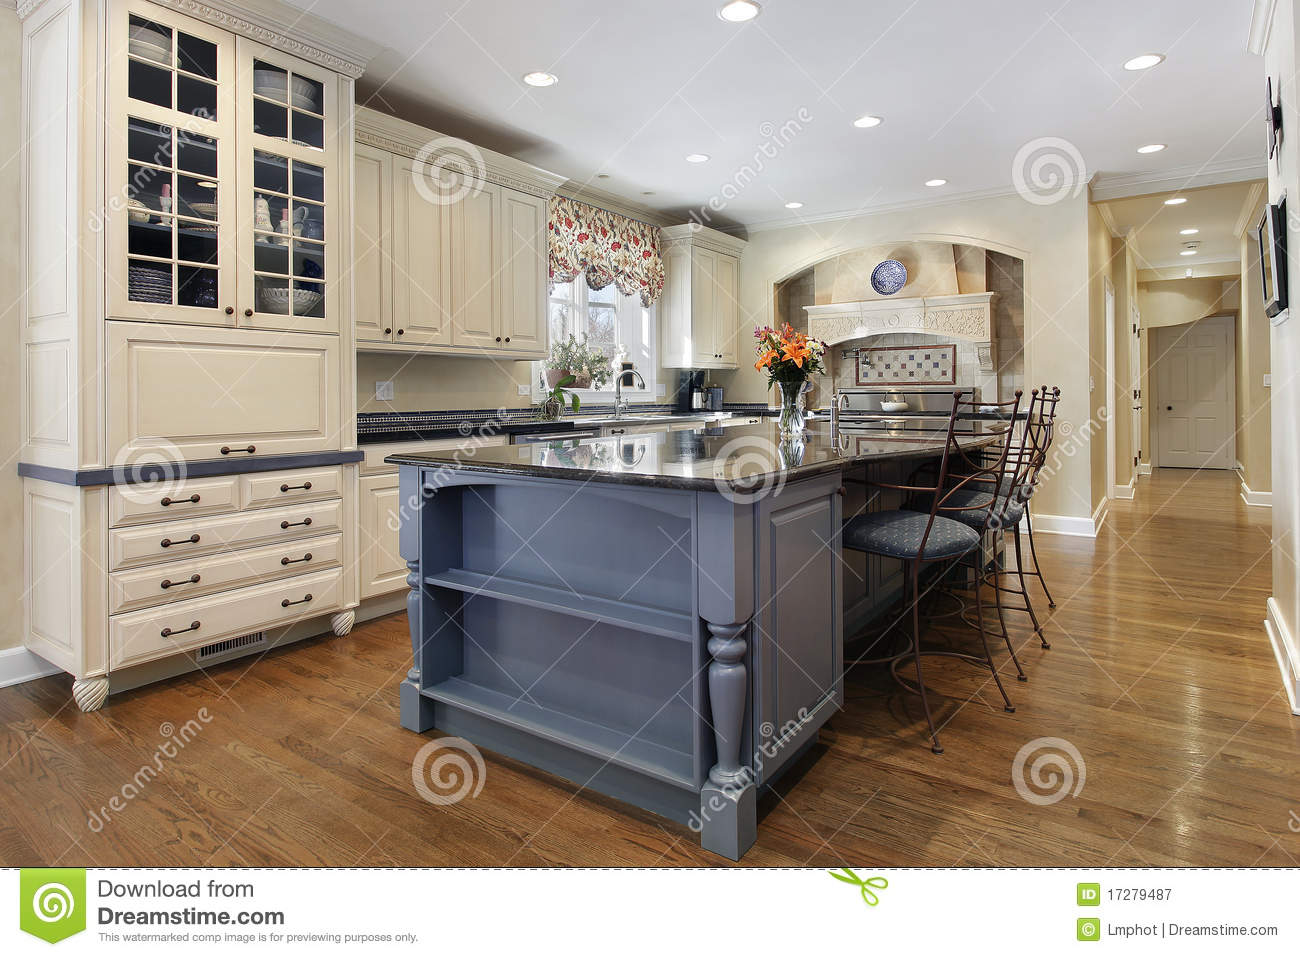 centre island kitchen kitchen with large center island stock image image of 2054